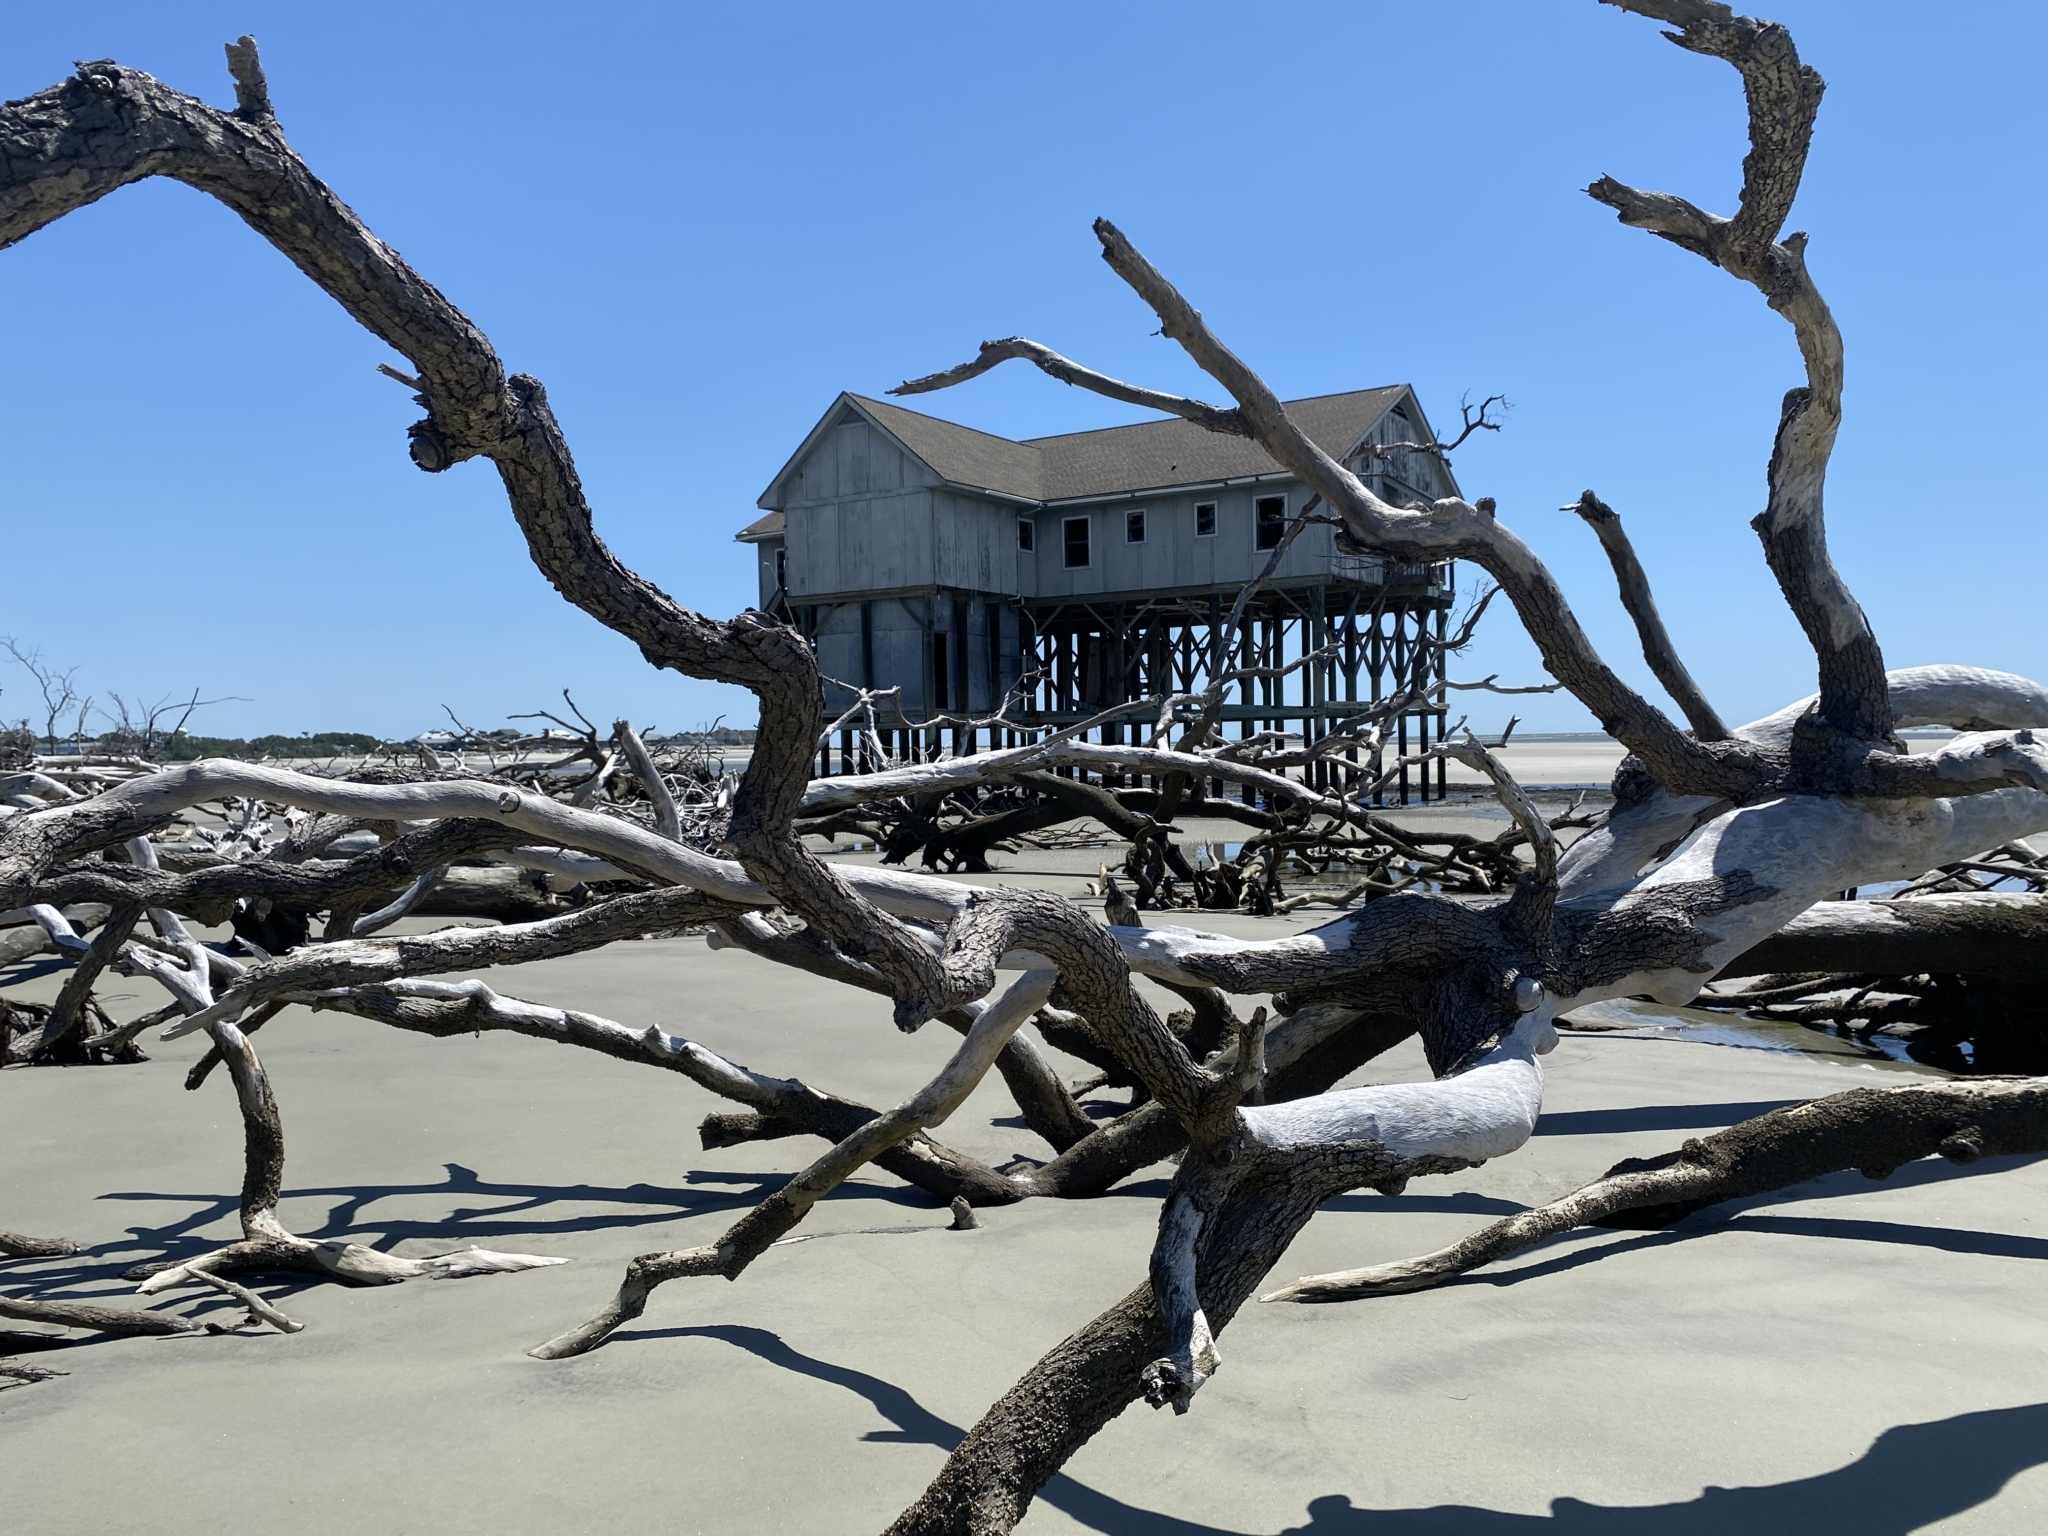 Remnants of USC Beaufort's research center on Pritchard's Island